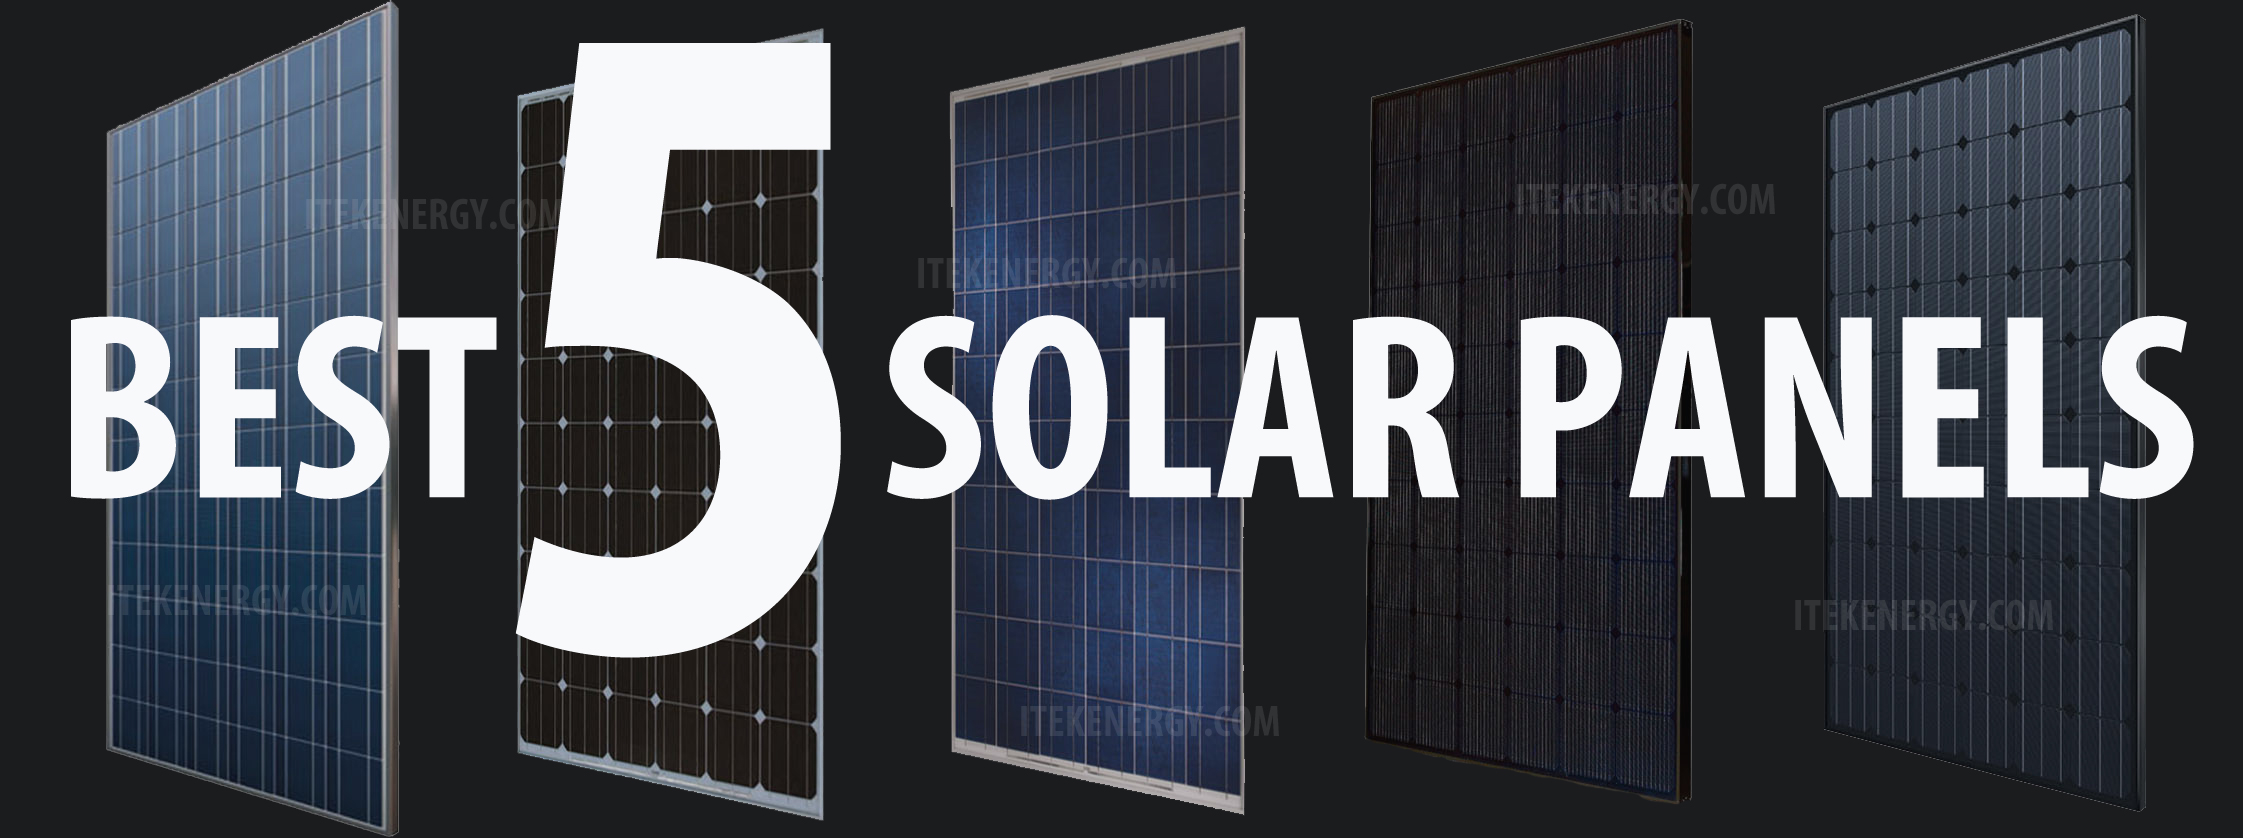 5 Best Solar Panels For Homes To Install In 2019 Solar Panels Reviews - Download What Are The Best Solar Panels On The Market? Images